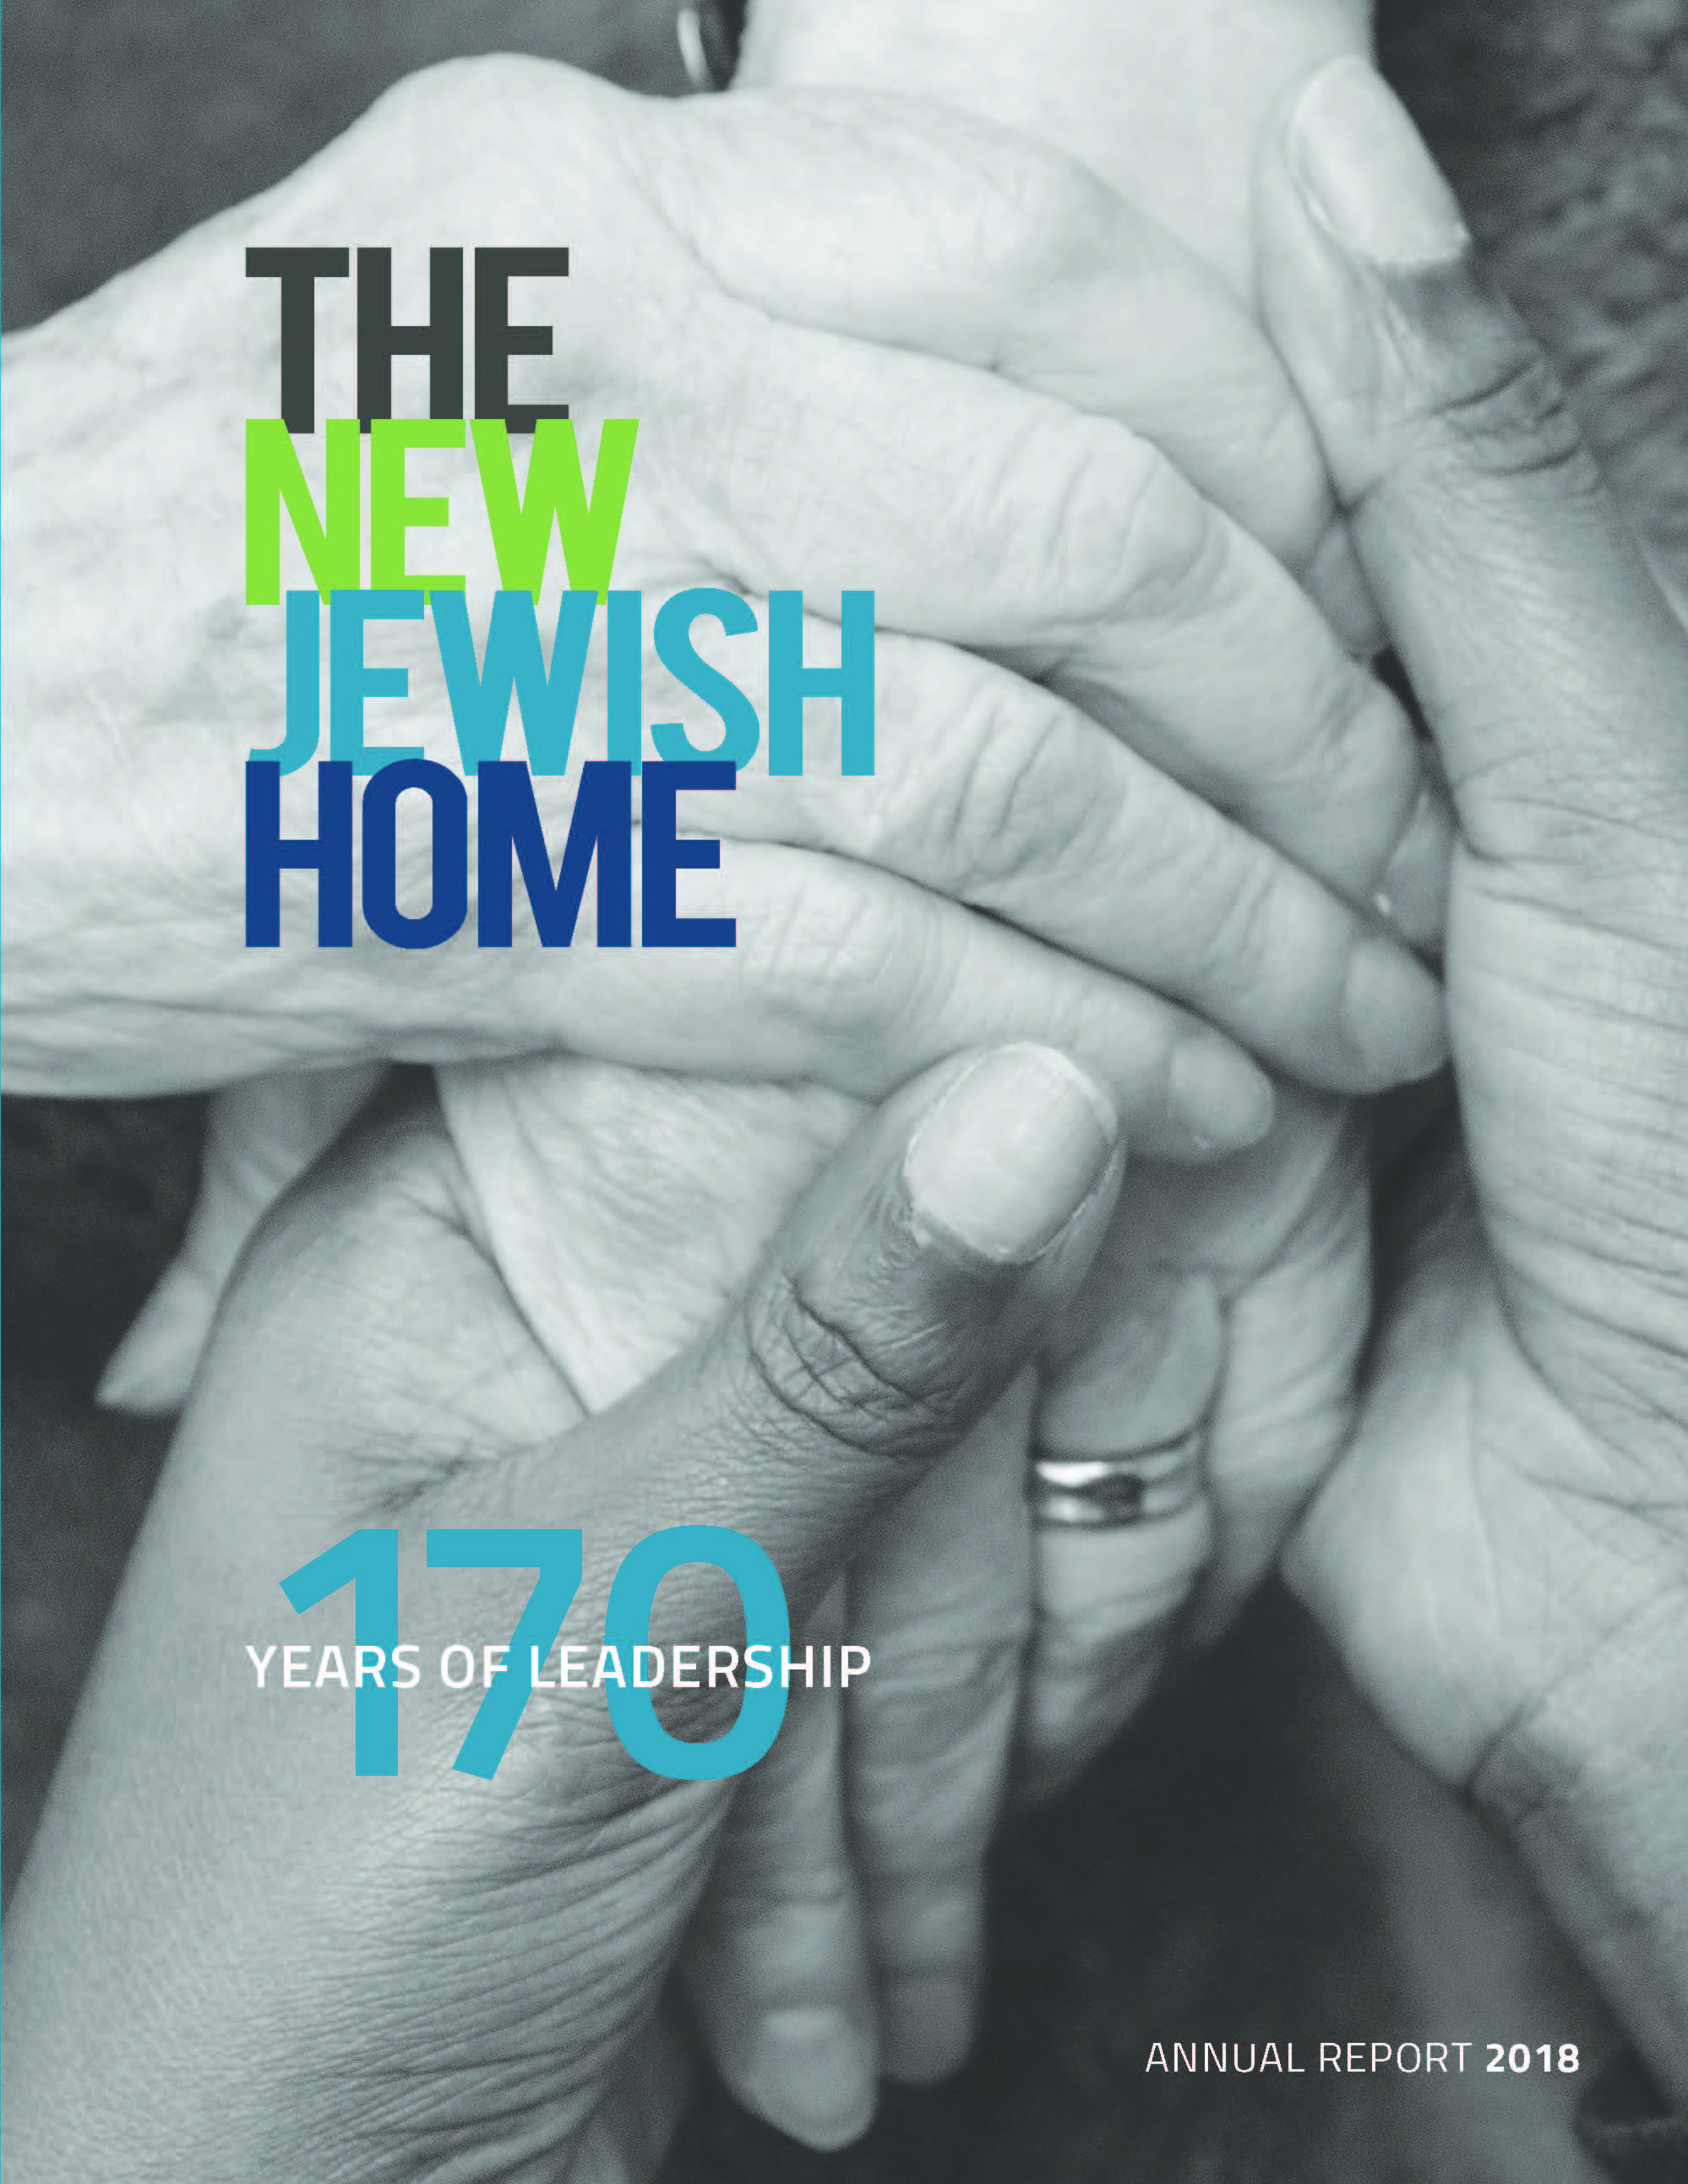 Cover of The New Jewish Home 2018 annual report